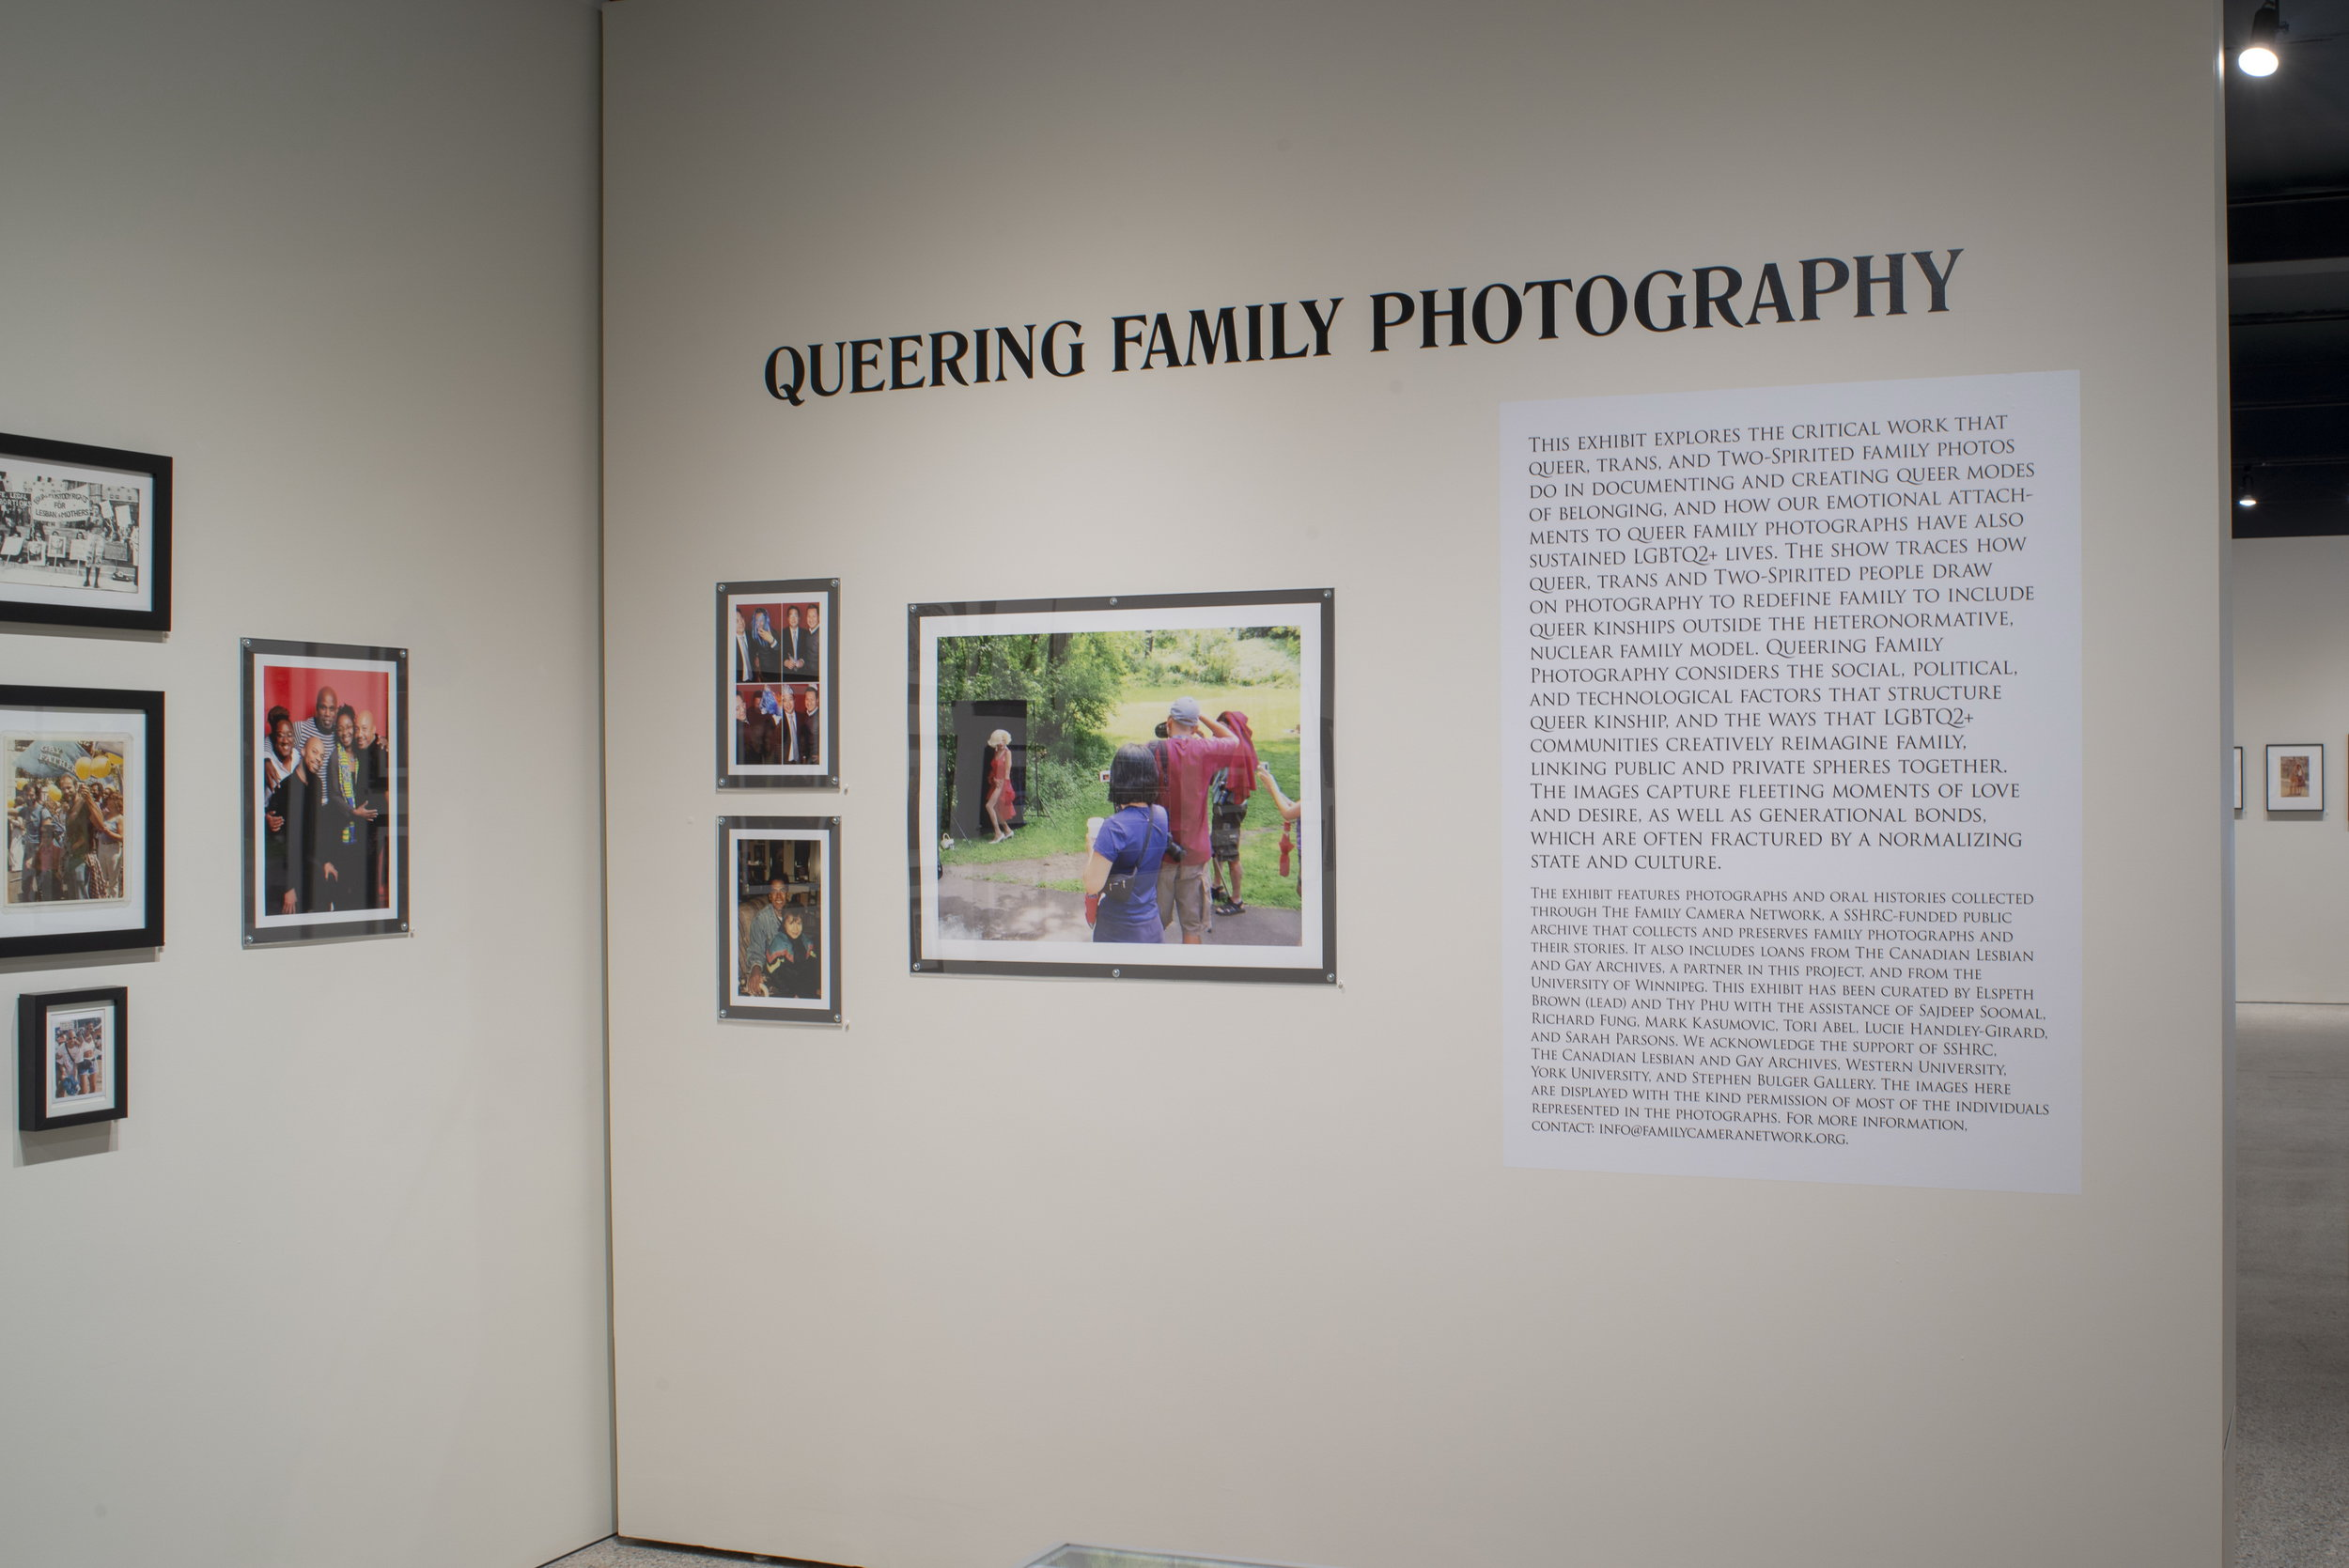 Installation of  Queering Family Photography  at Stephen Bulger Gallery. Photo: © Scott Poborsa / Courtesy of Stephen Bulger Gallery, 2018.